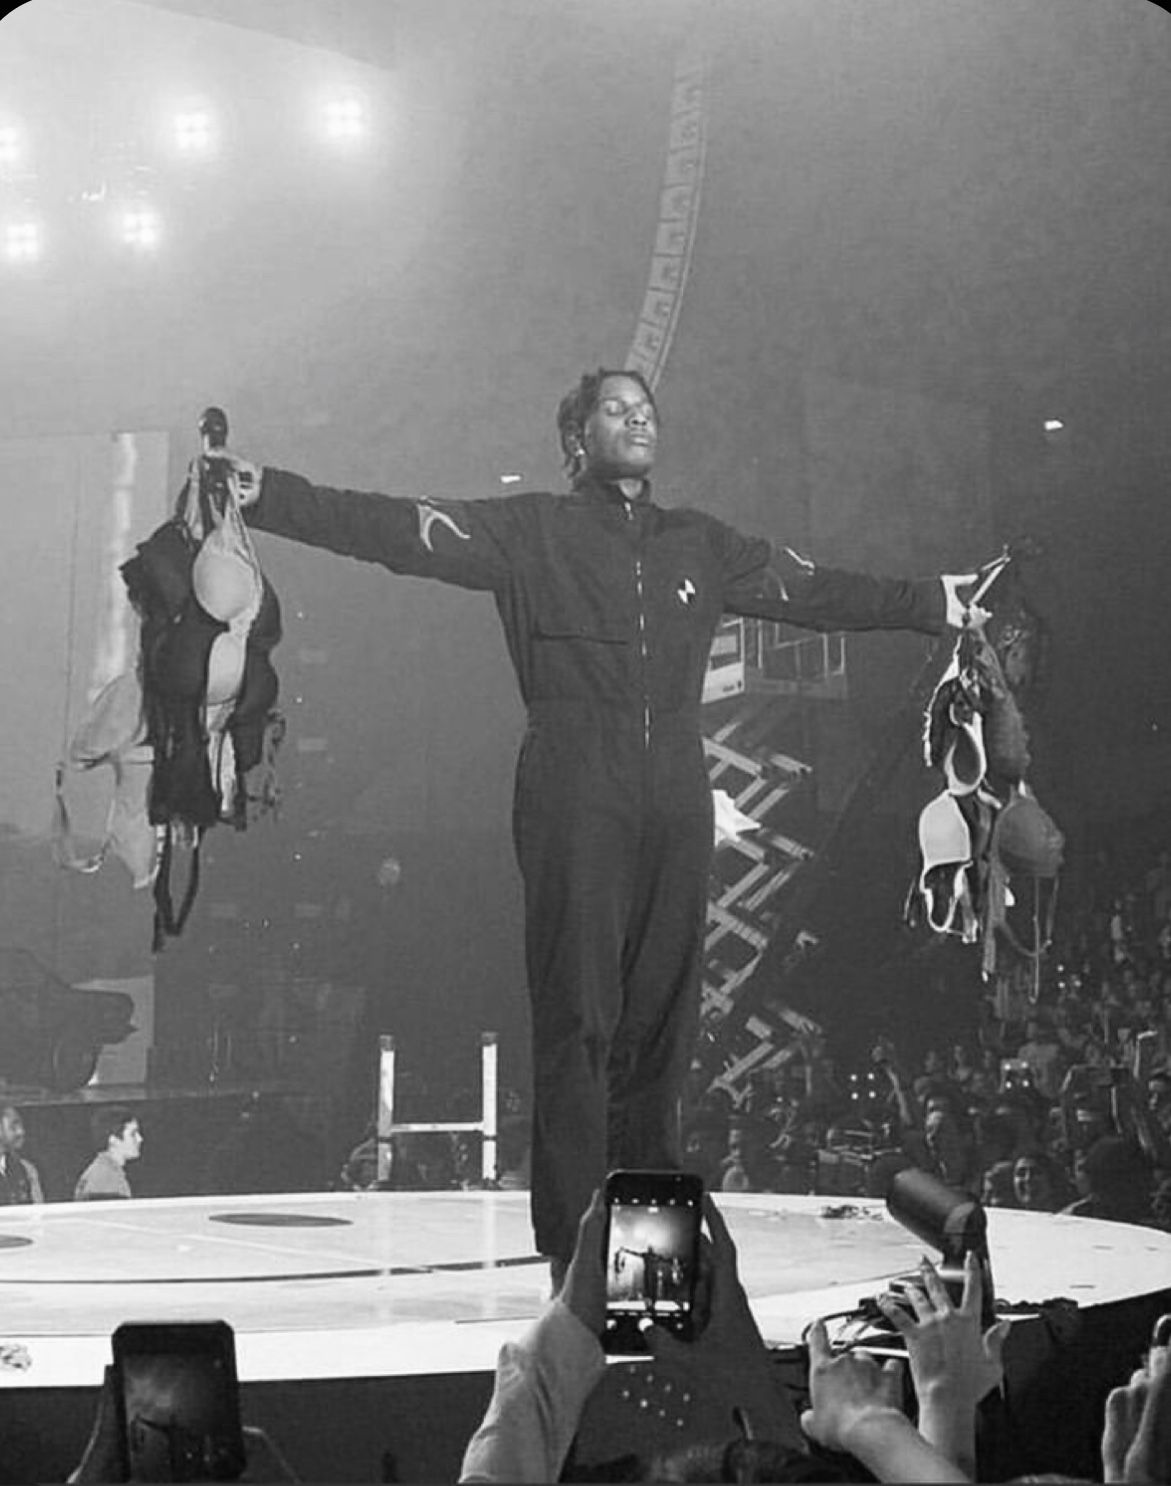 Asap Rocky Live Aesthetic Black And White Aesthetic Live Aesthetic Black Wallpaper Aesthetic asap rocky live wallpaper